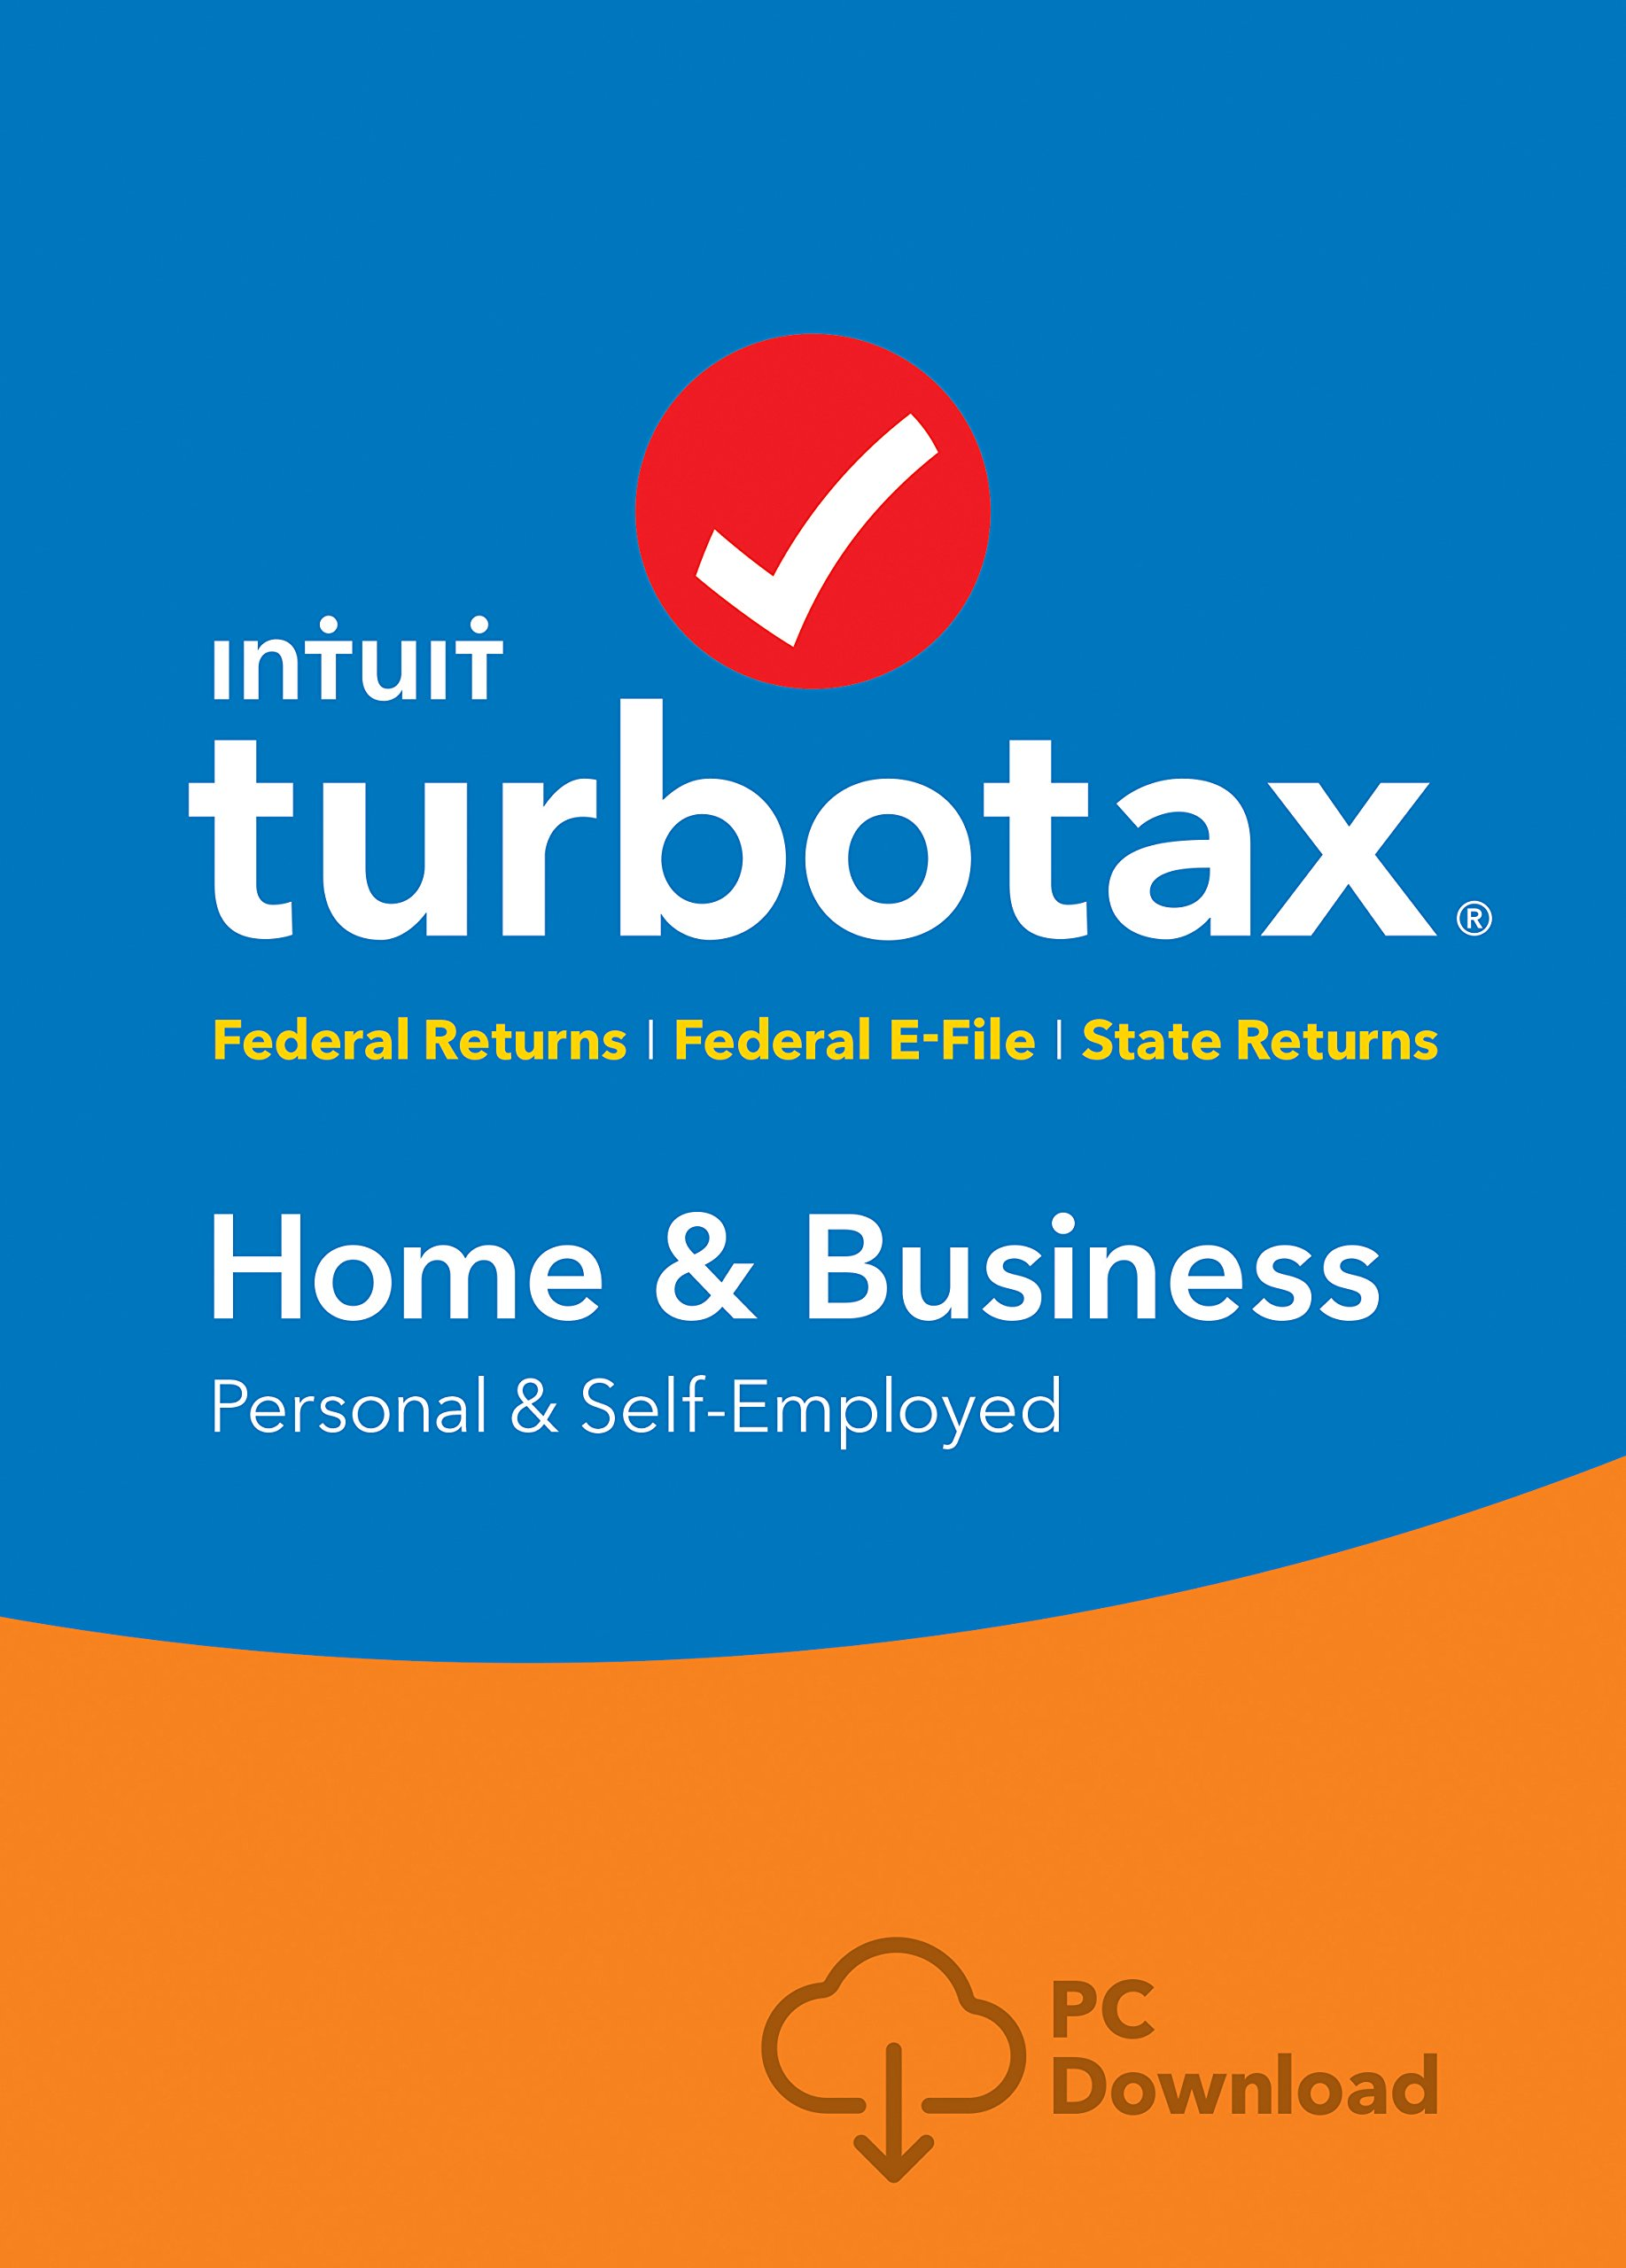 TurboTax Home & Business + State 2018 Tax Software [PC Download] [Amazon Exclusive] by Intuit, Inc.